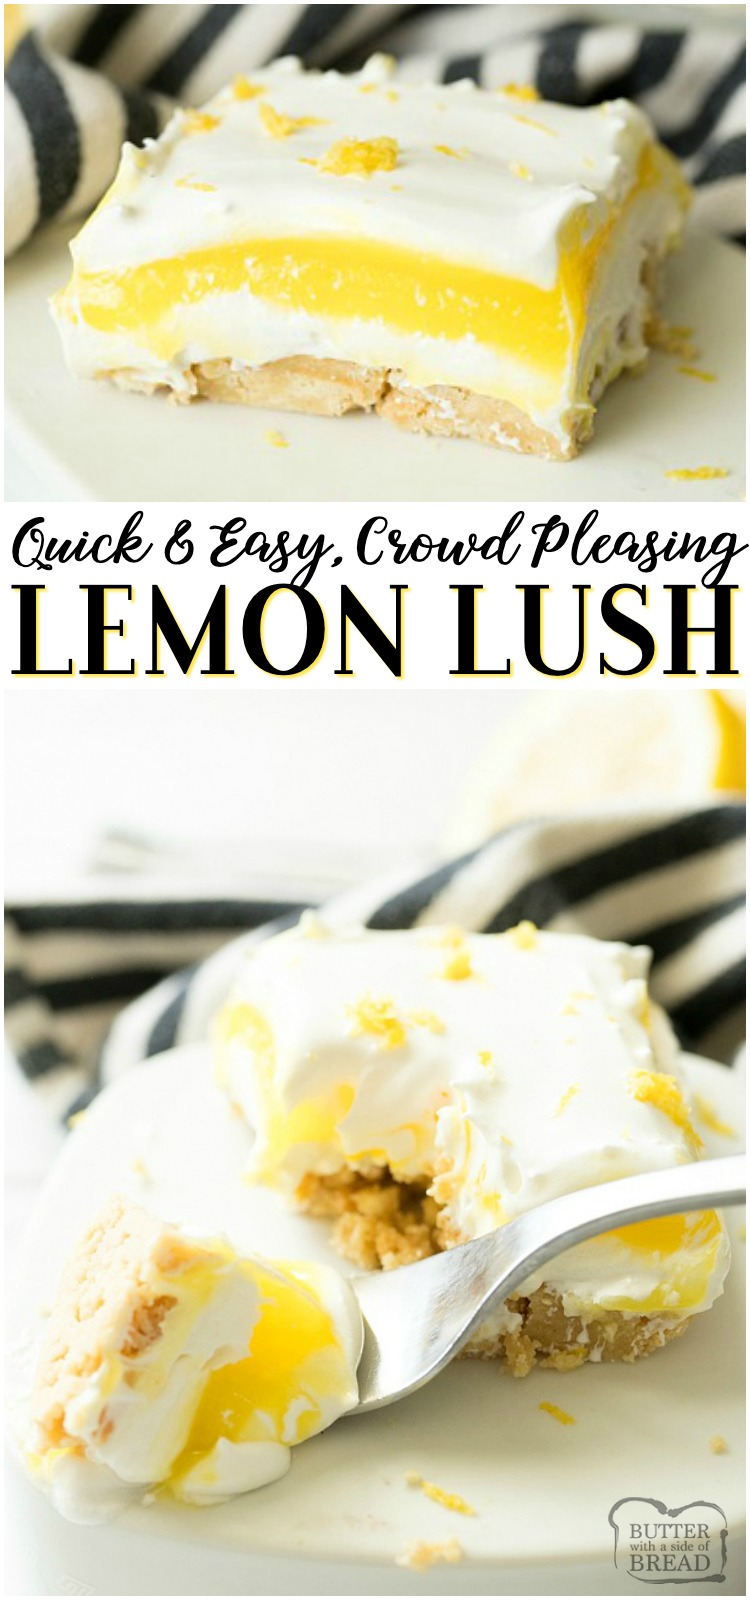 Lemon Lush Dessert made from lemon pudding mix, cream cheese, whipped topping and golden Oreos. Easy to make no-bake lemon lush dessert perfect for summer get togethers!